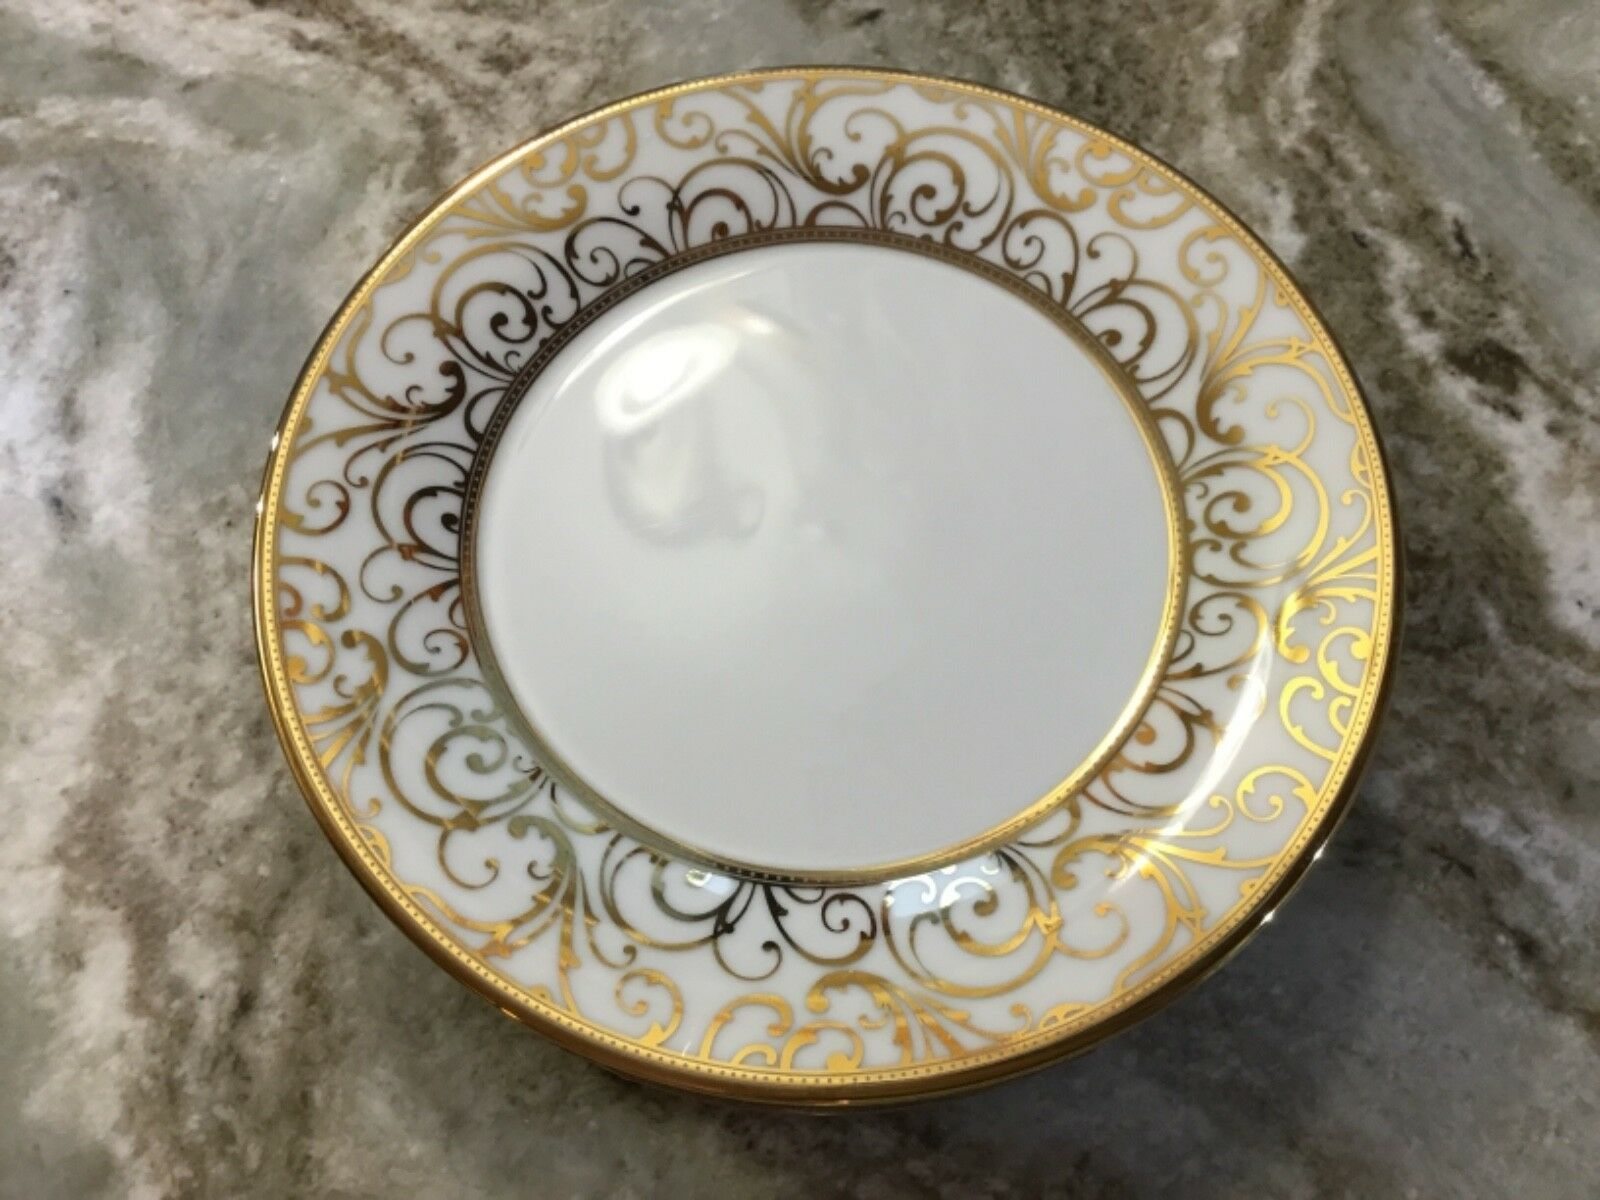 Luxe Ciroa Gold Swirl Salad Plates. Set Of 4. Weiß With Metallic Accents. New.